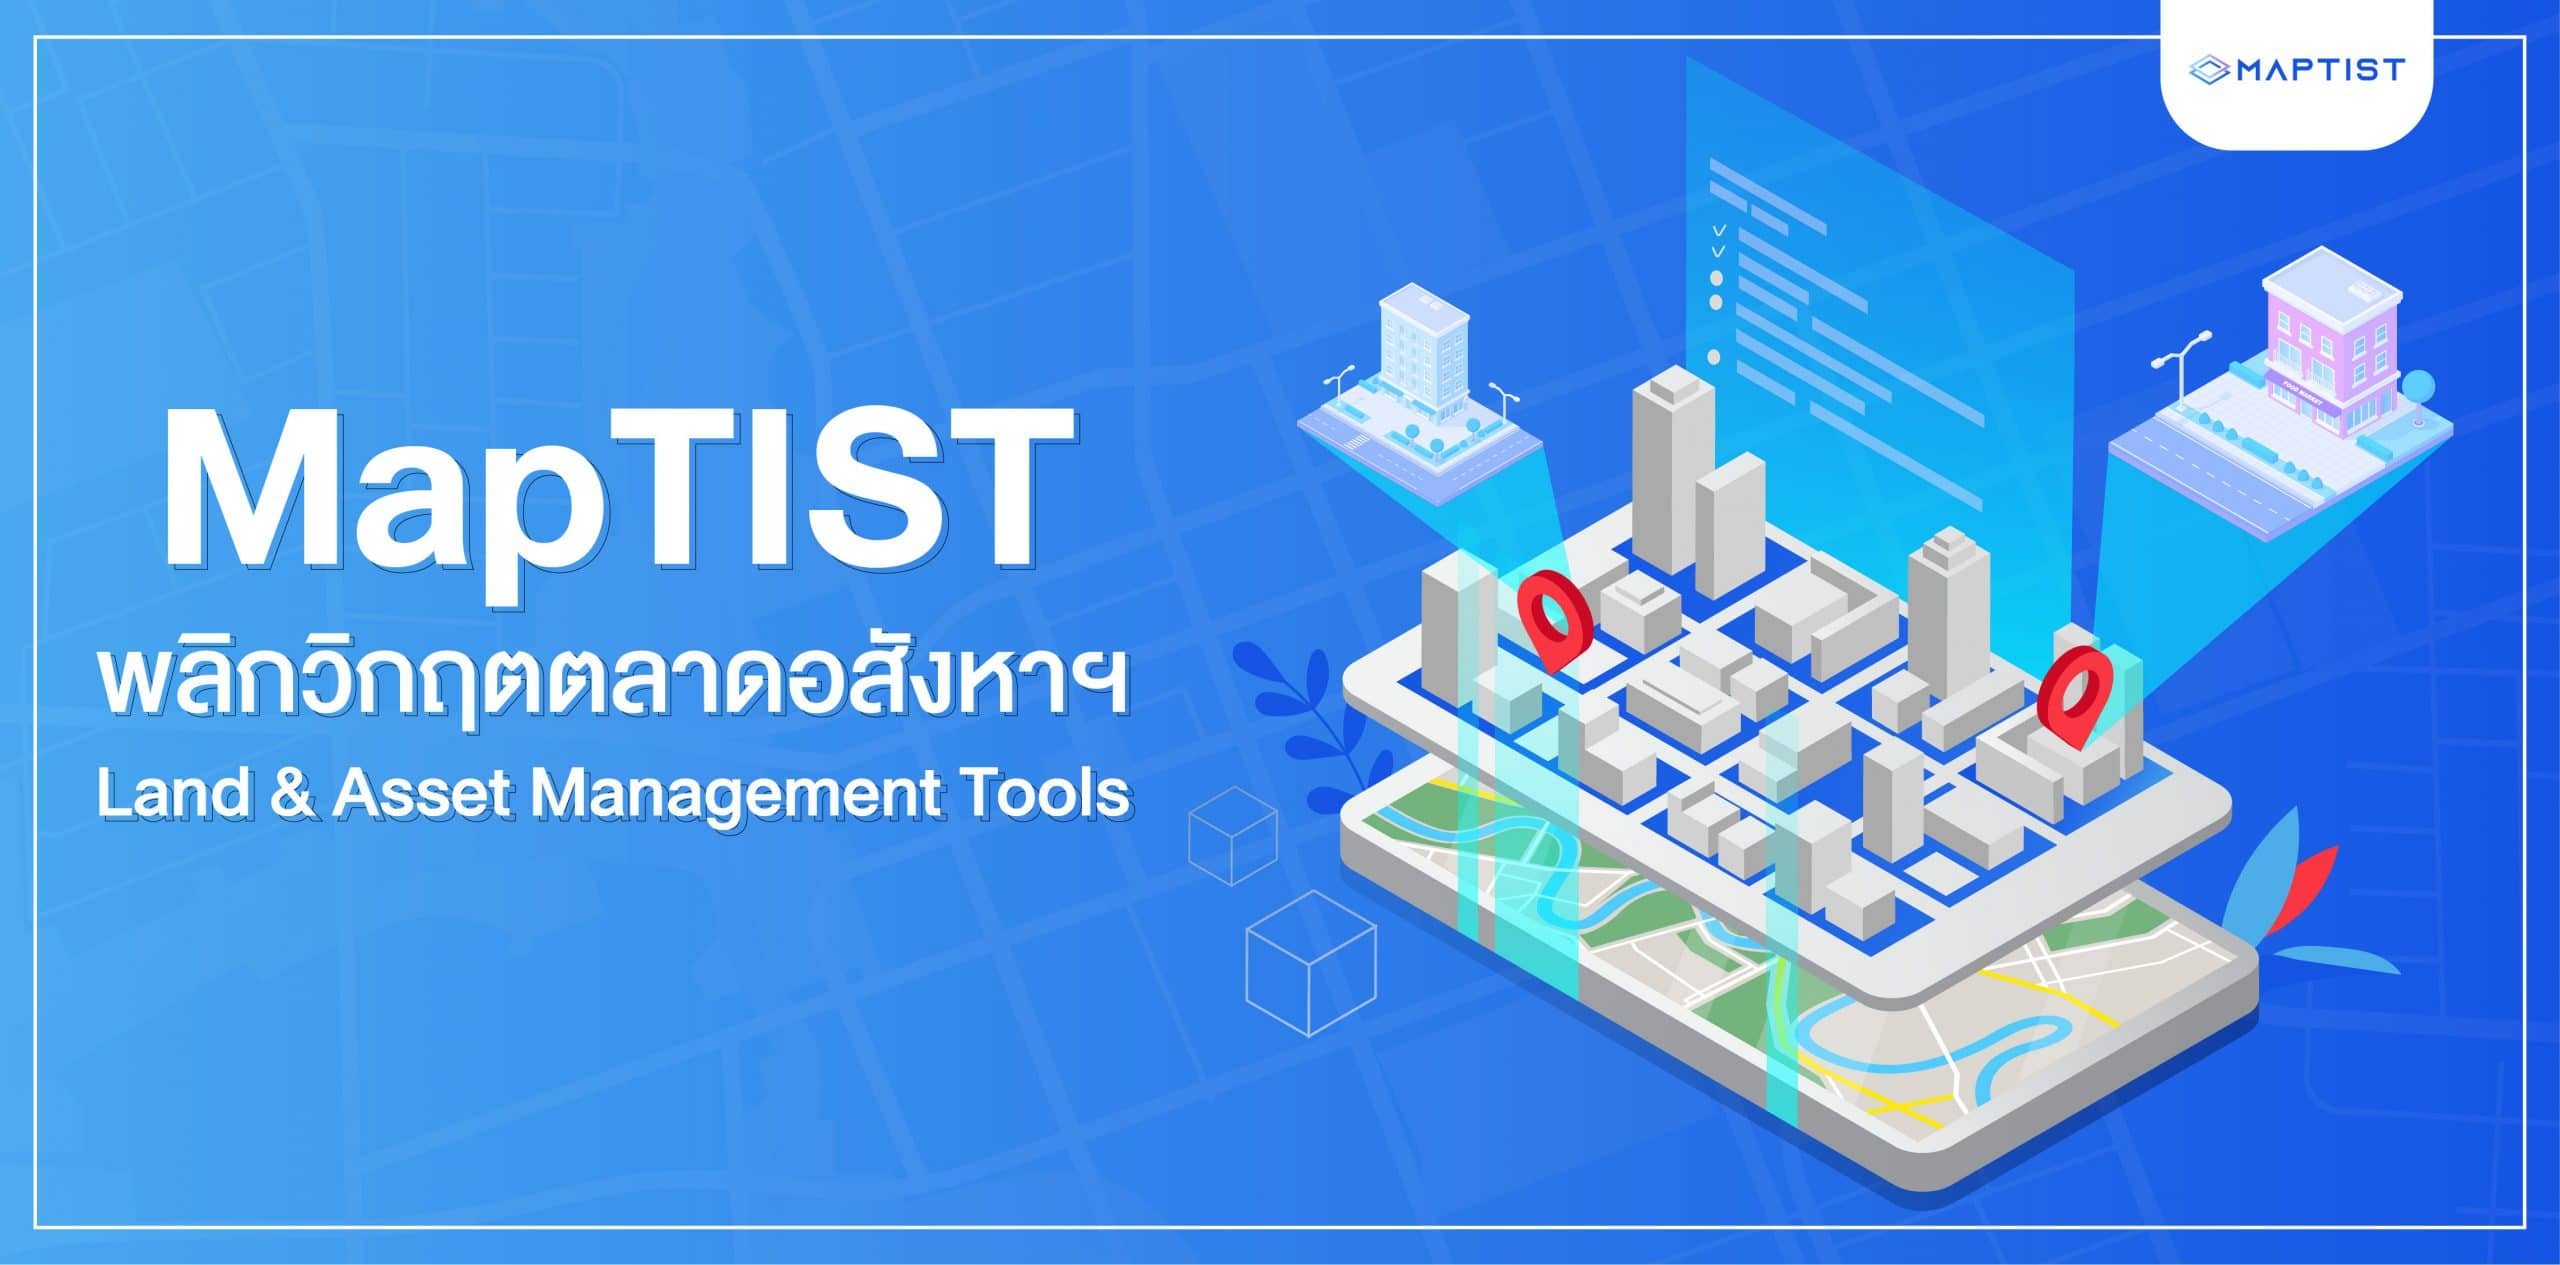 Land & Asset Management Tools